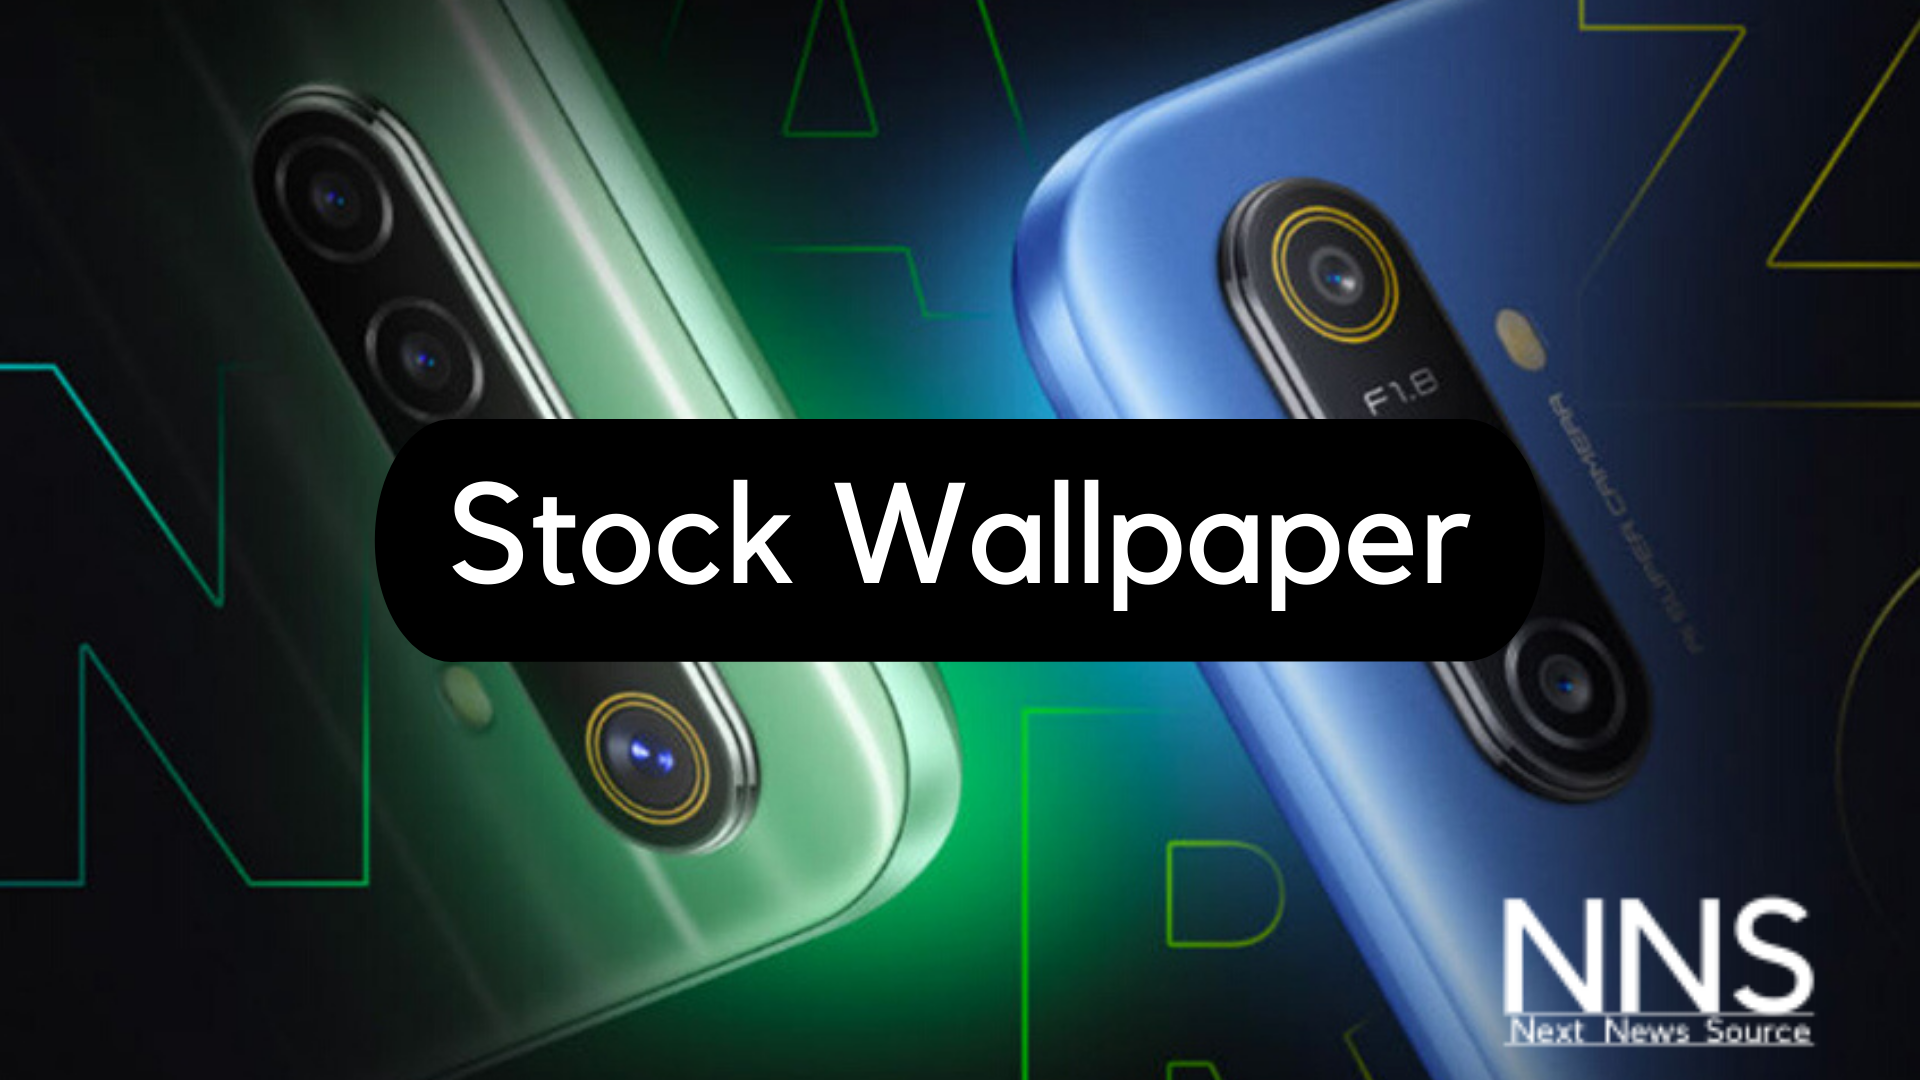 Realme Narzo 10 Stock Fhd Wallpapers Download Nns